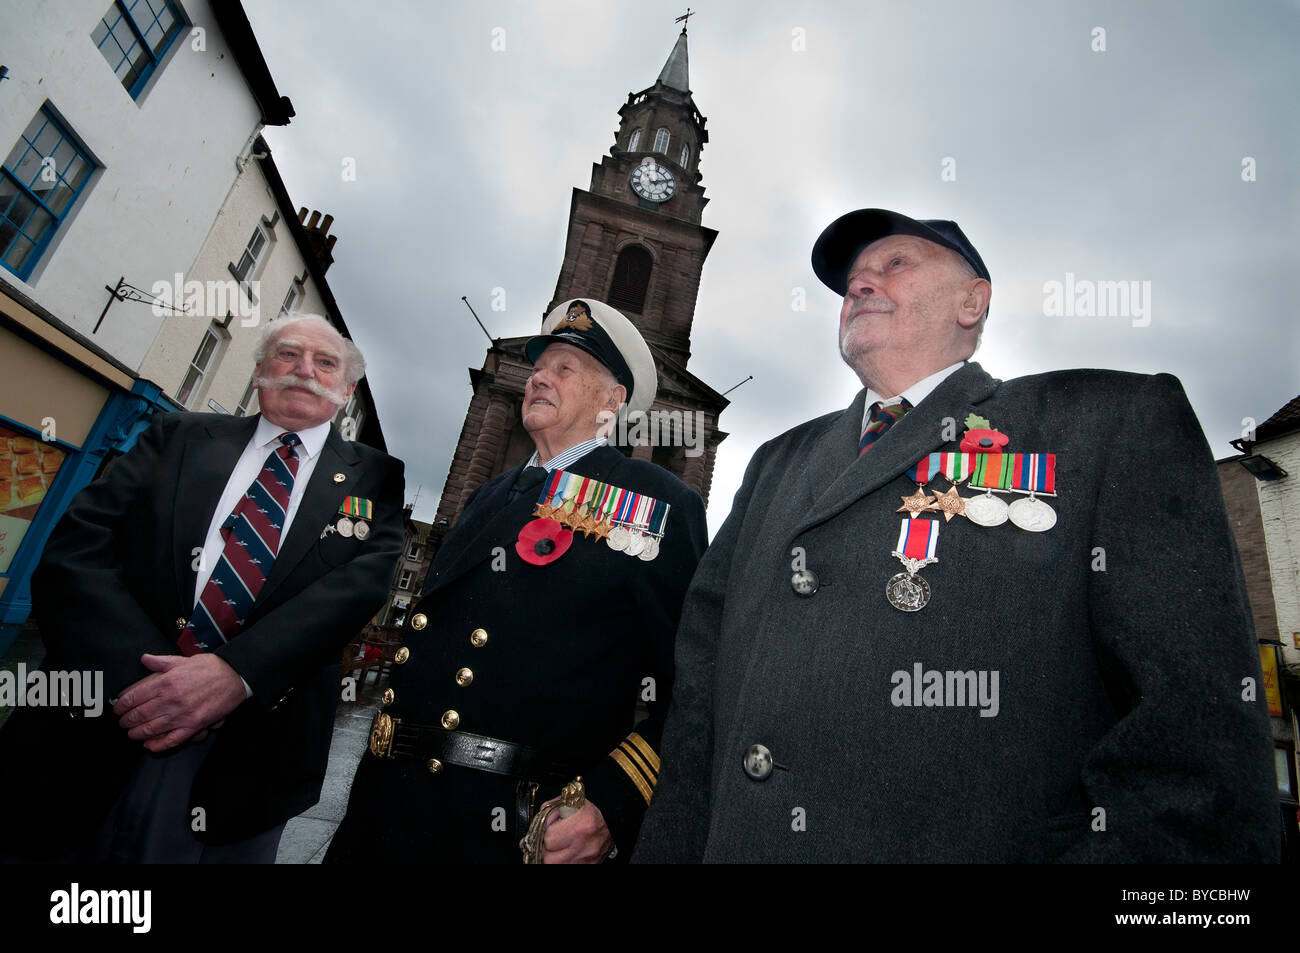 Second World War veterans from the RAF, RN and Army - Stock Image